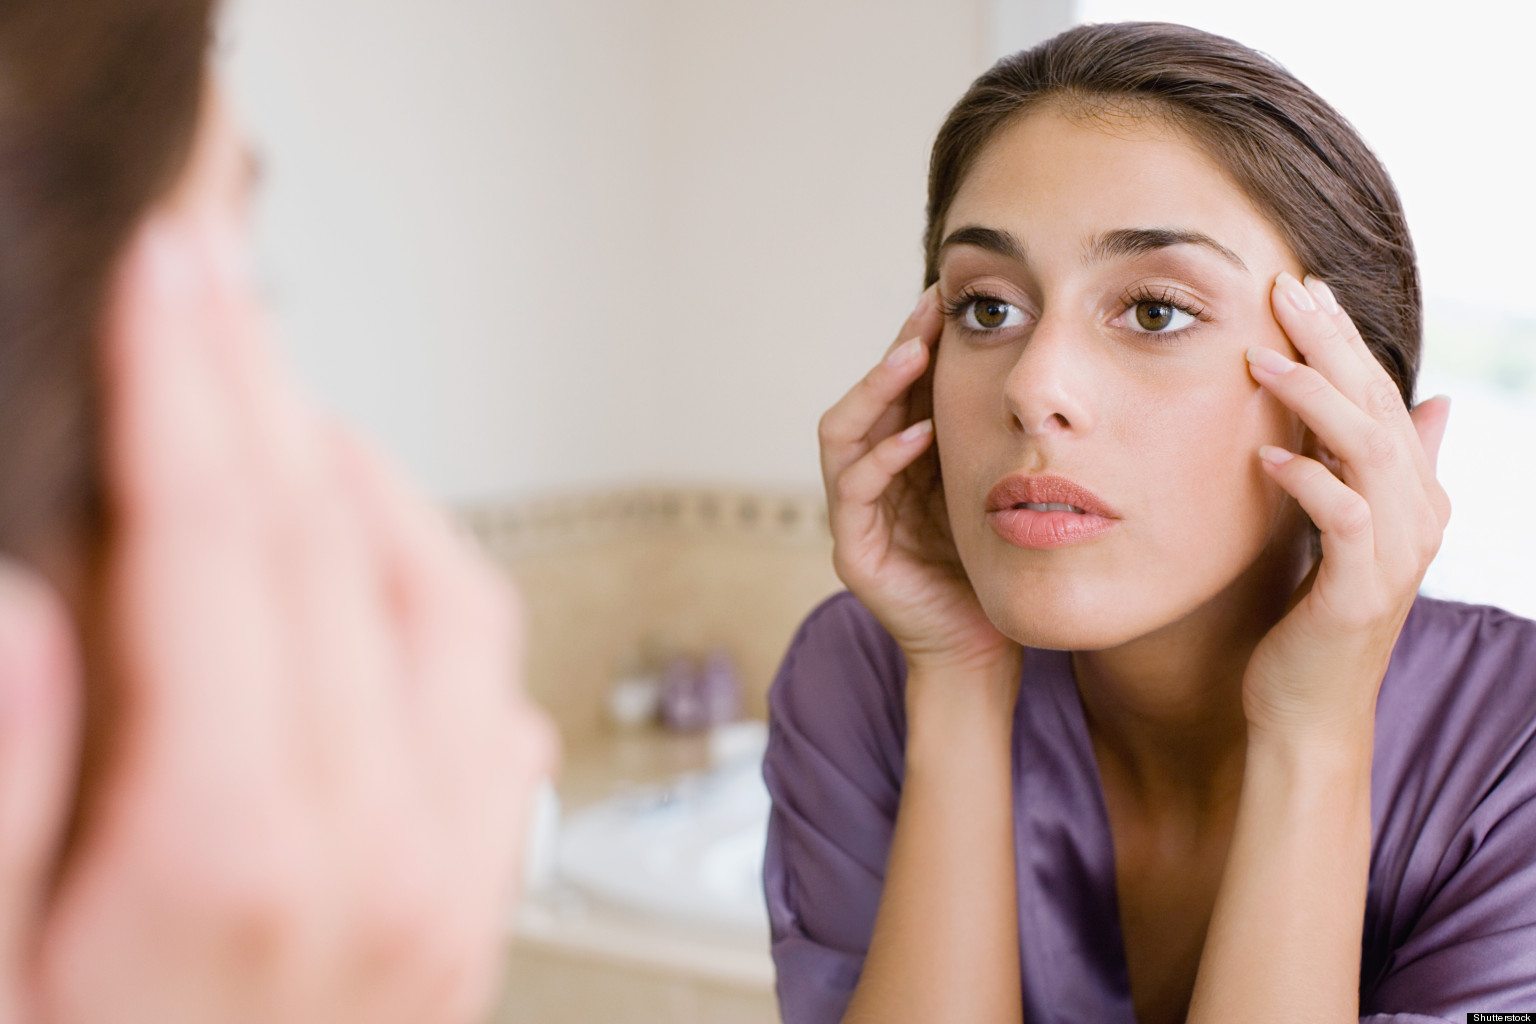 Hormonal breakouts in an adult woman